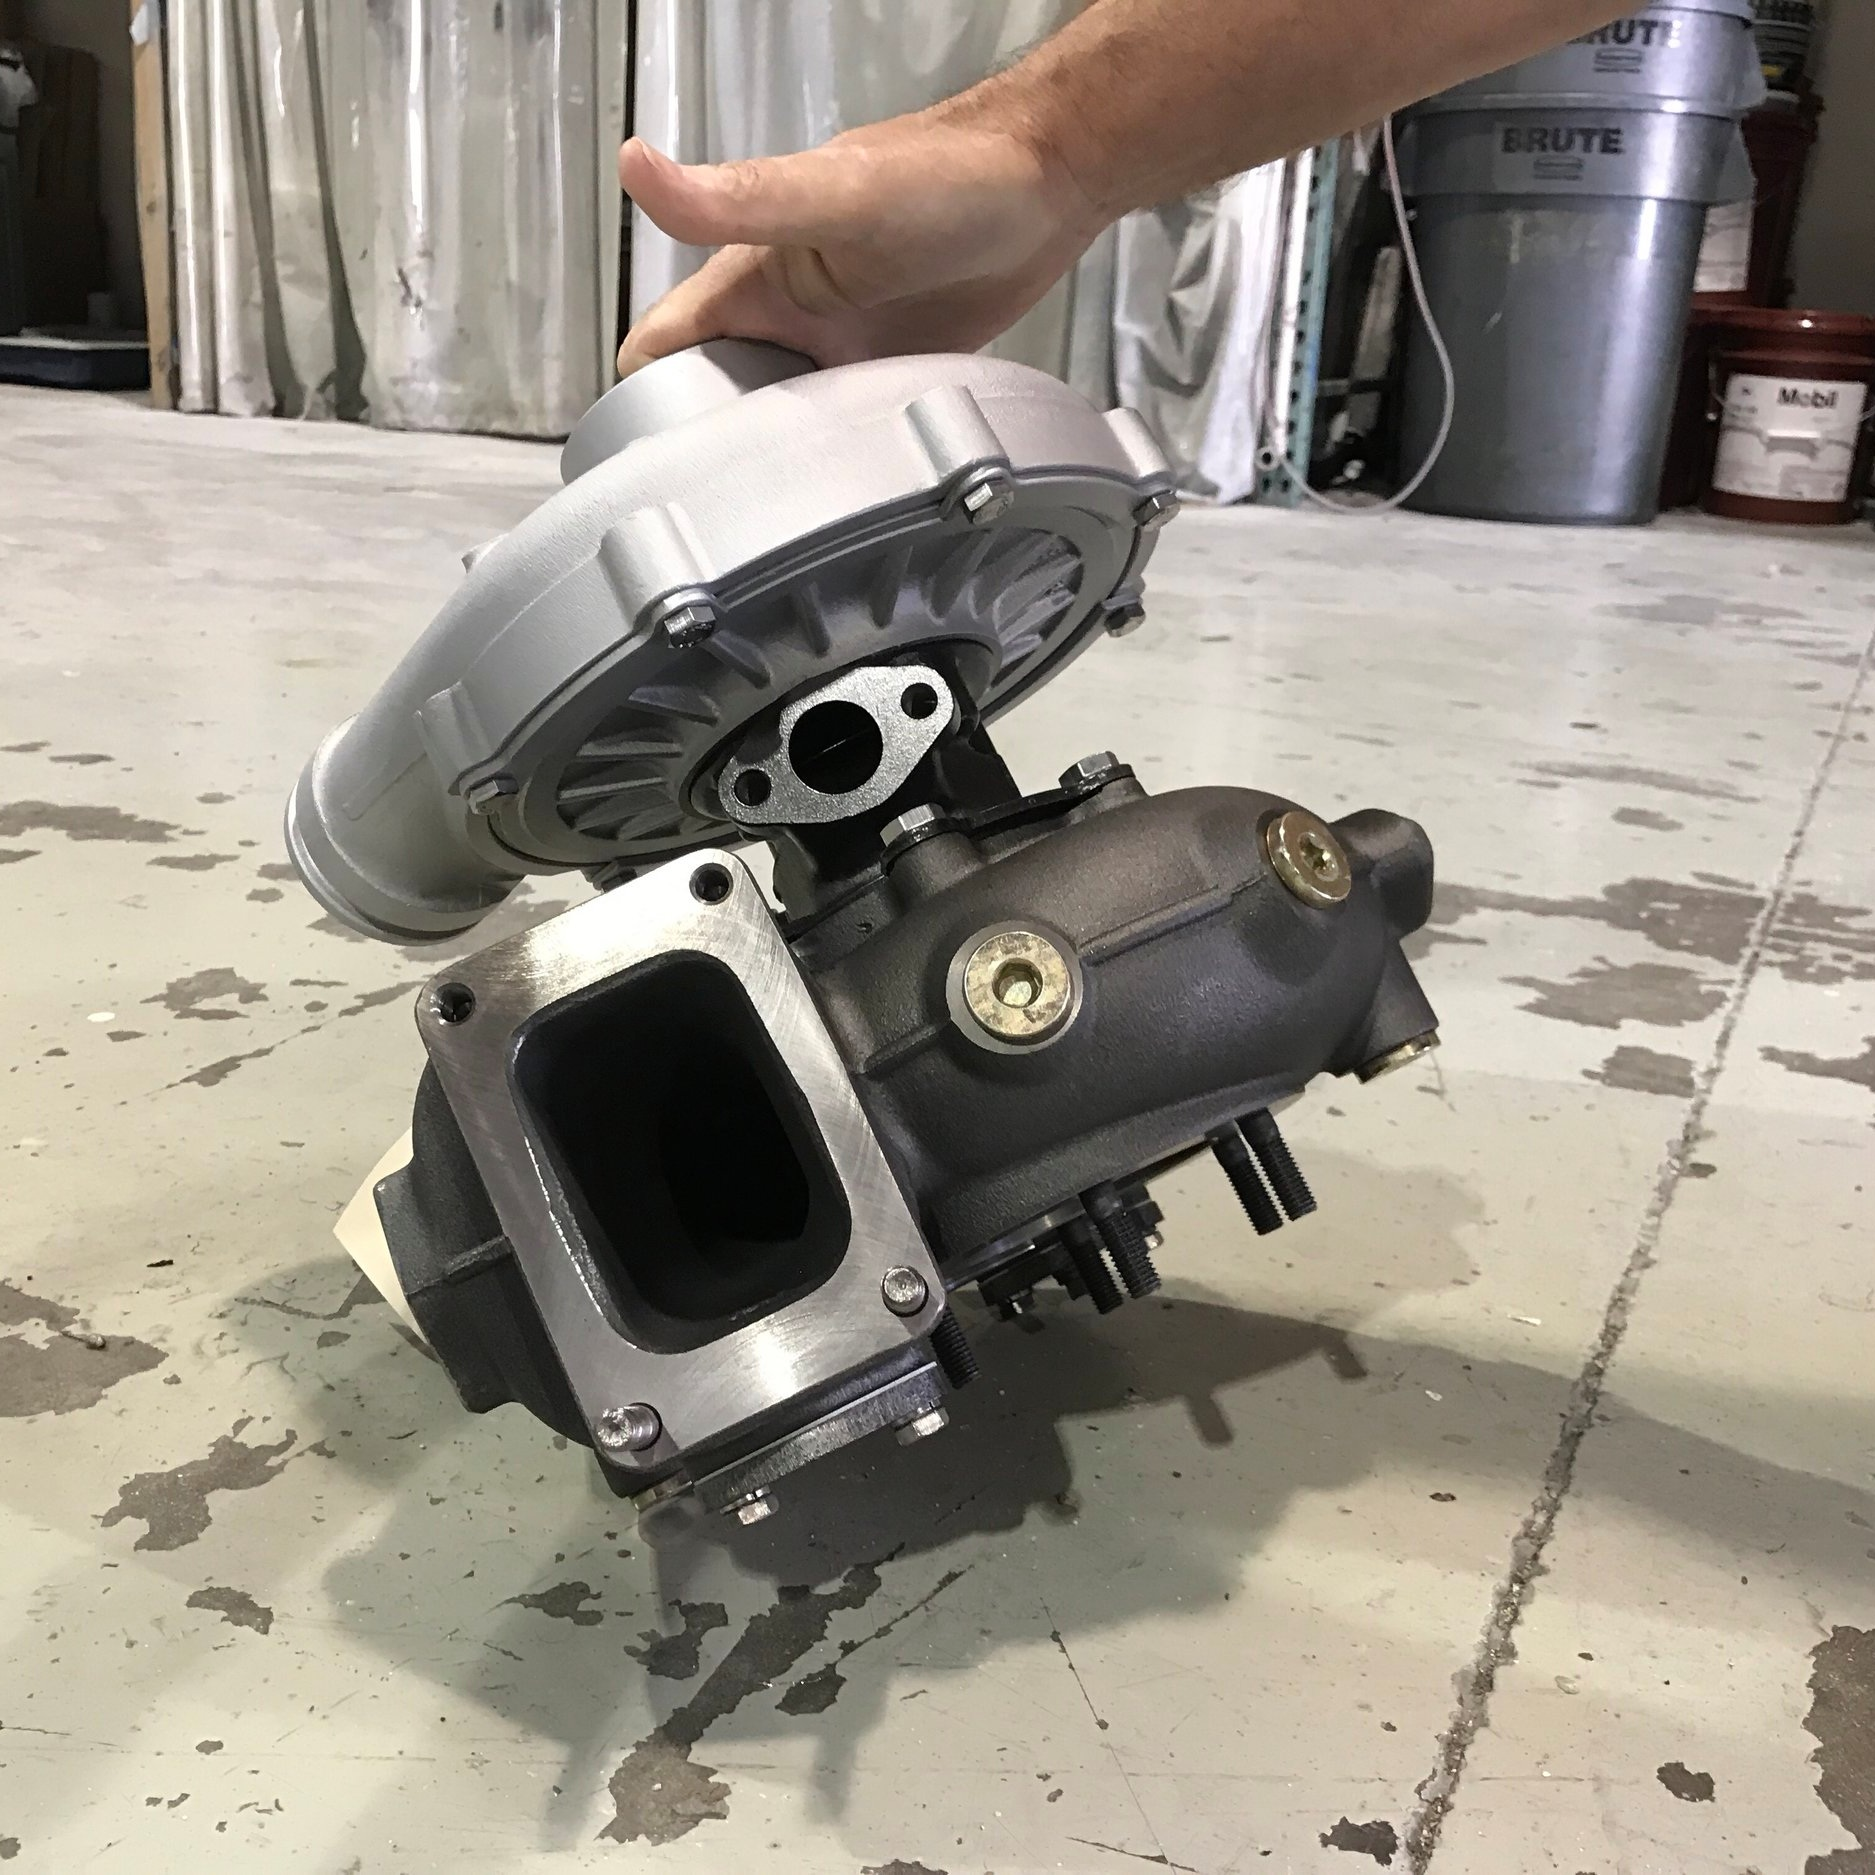 Turbocharger after Blueprinting